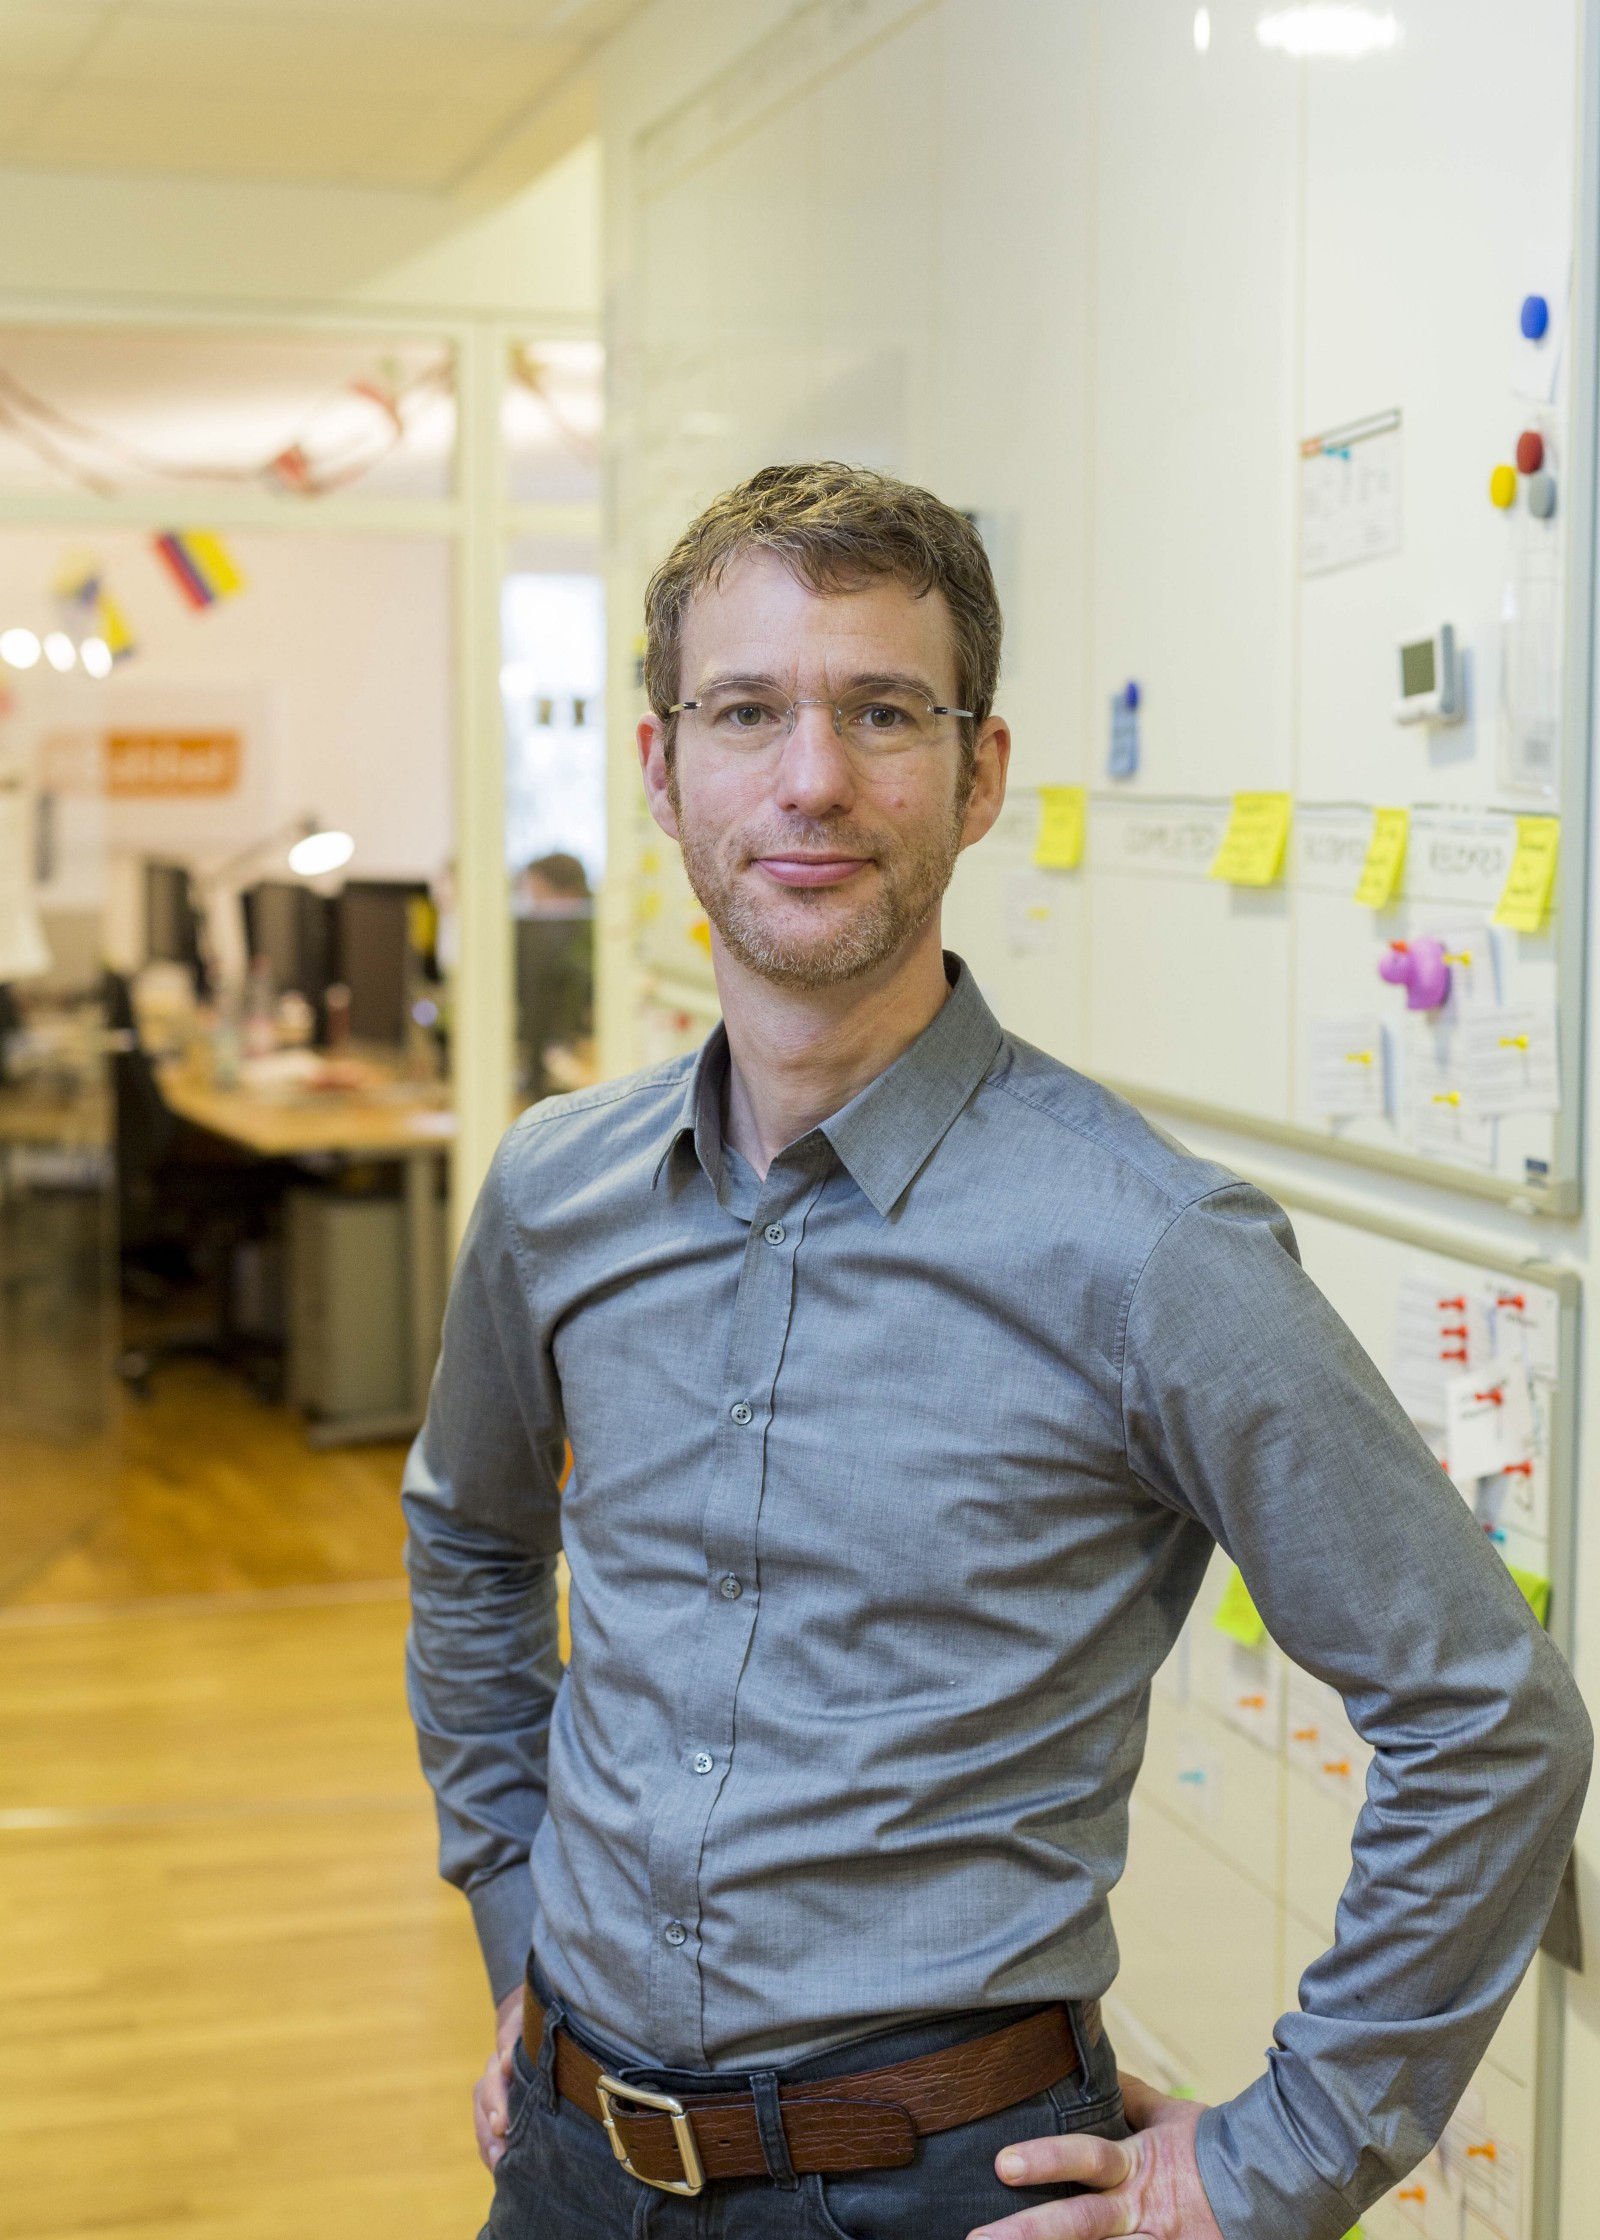 Markus Witte founded Babbel in 200